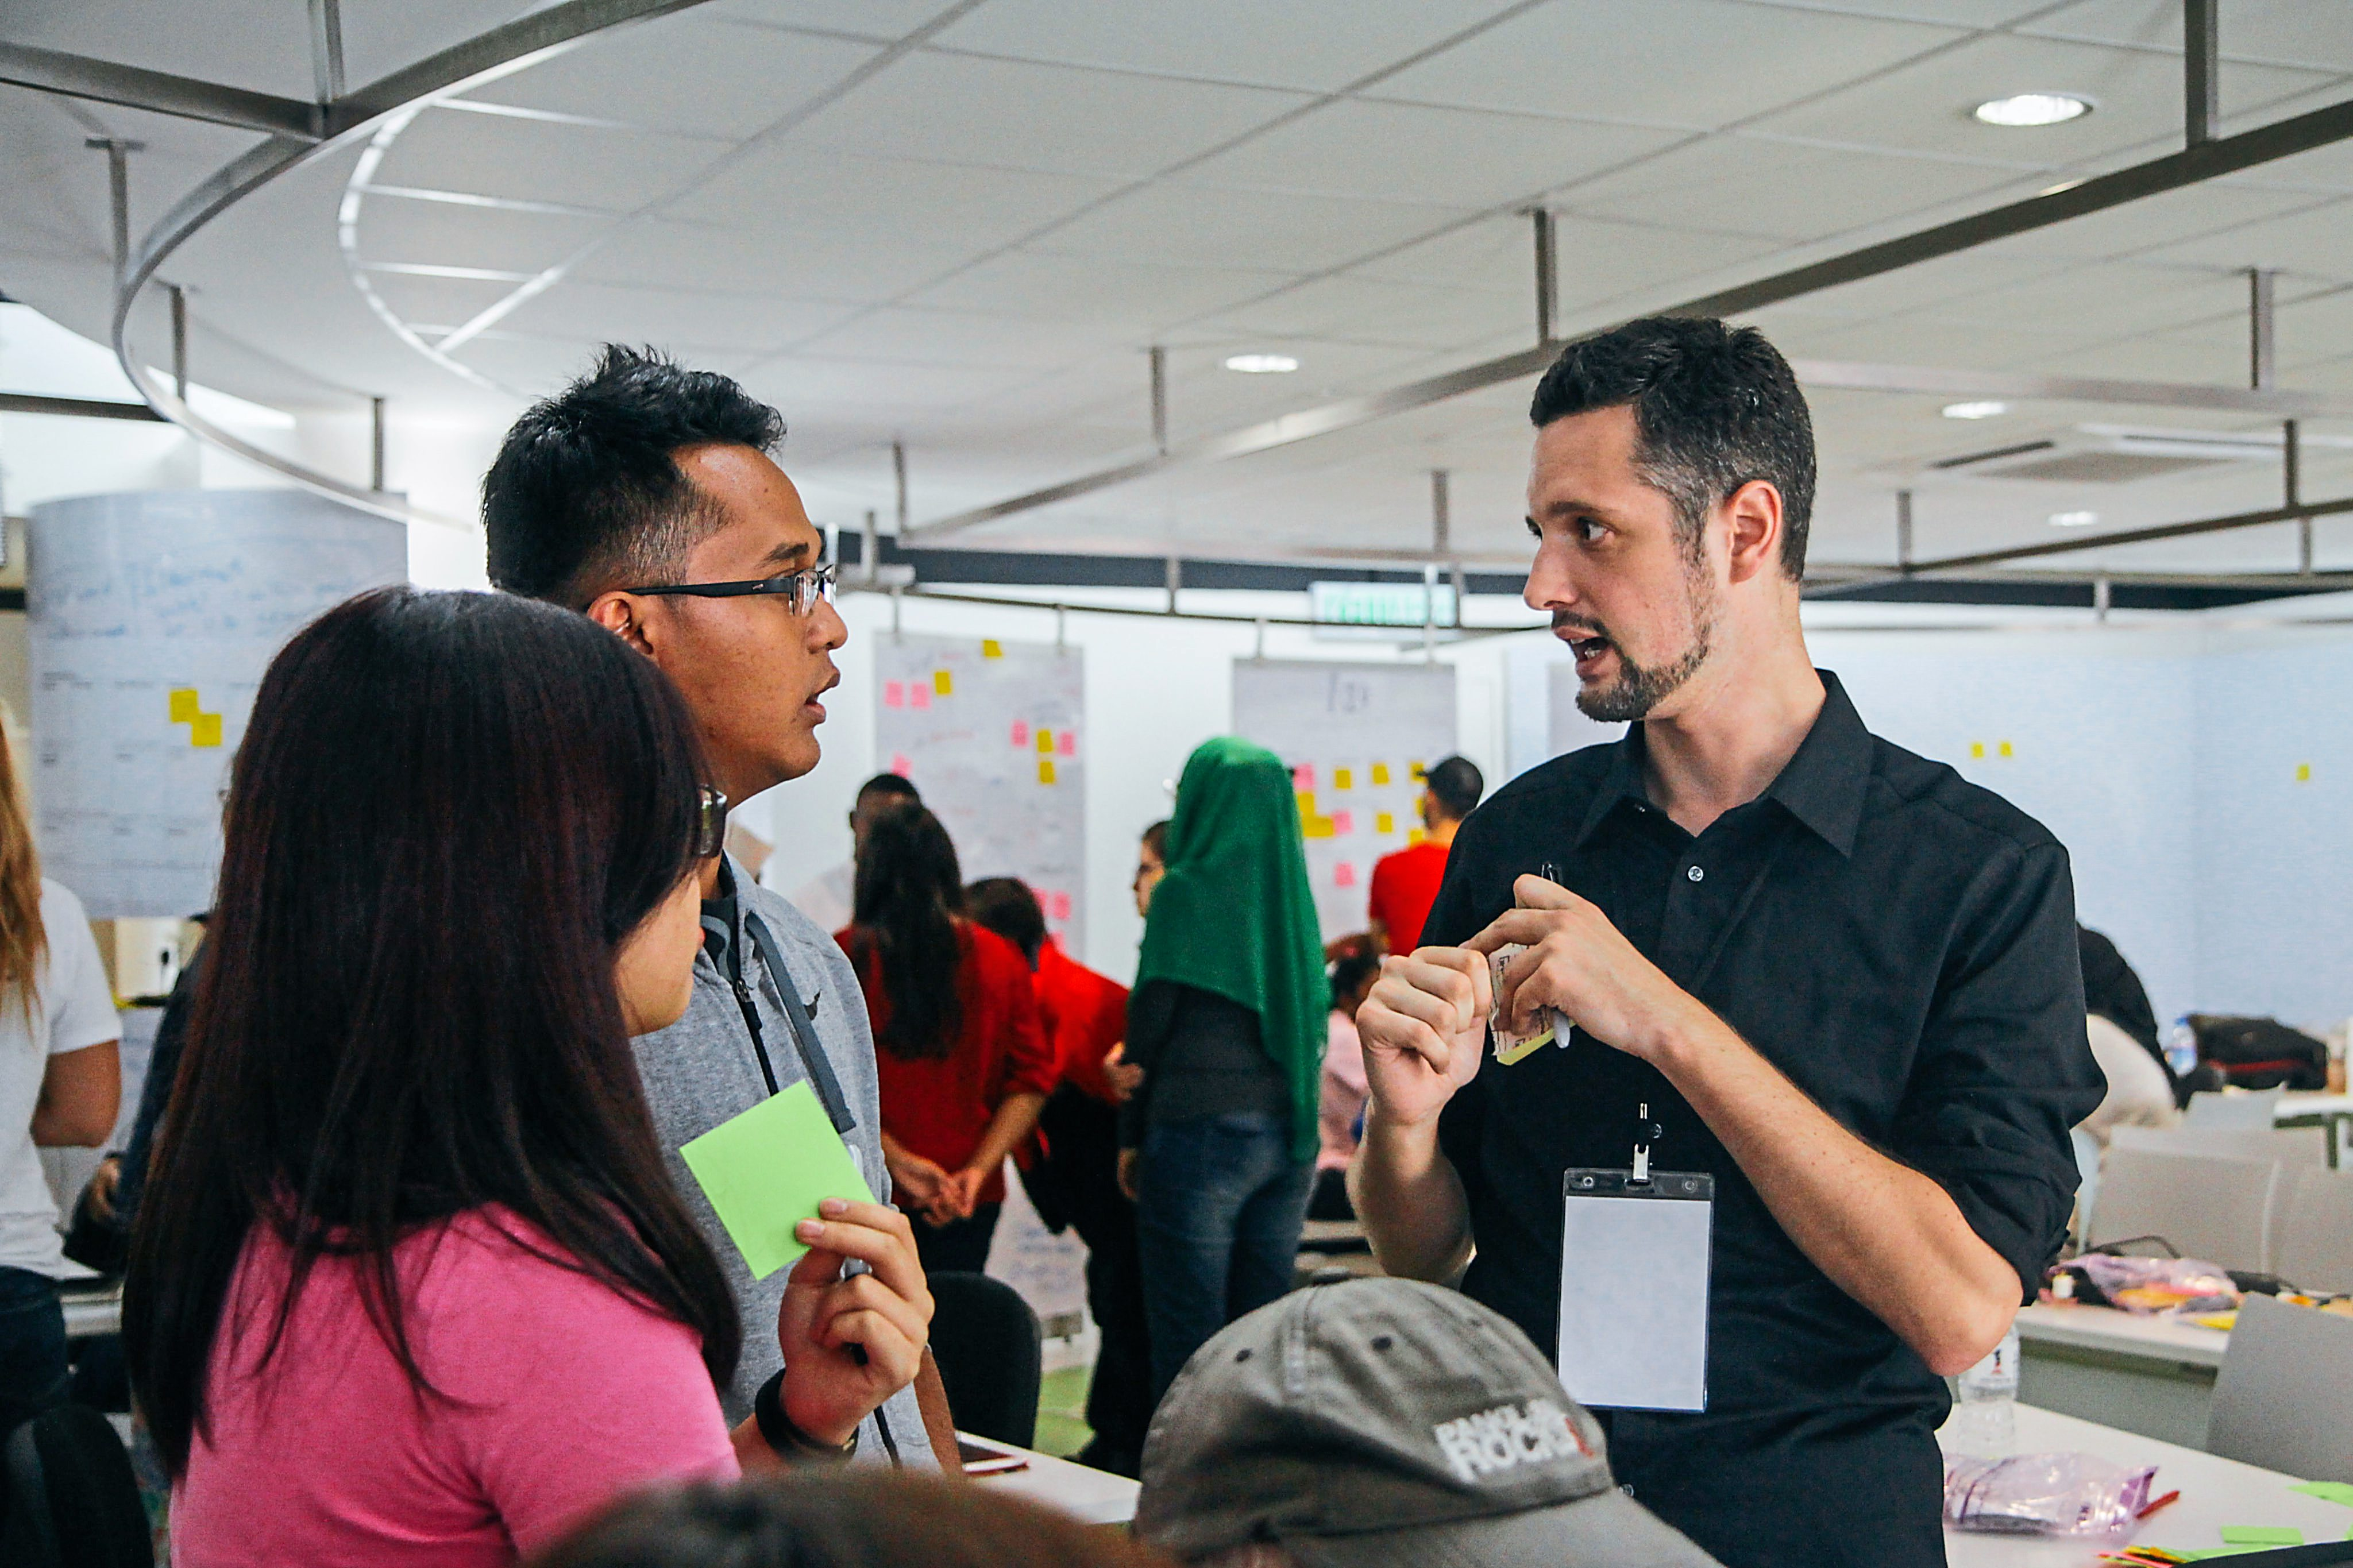 Kal Joffres, one of the initiators of the MakeWeekend events, where the Makers gather giving the participants some pointers.